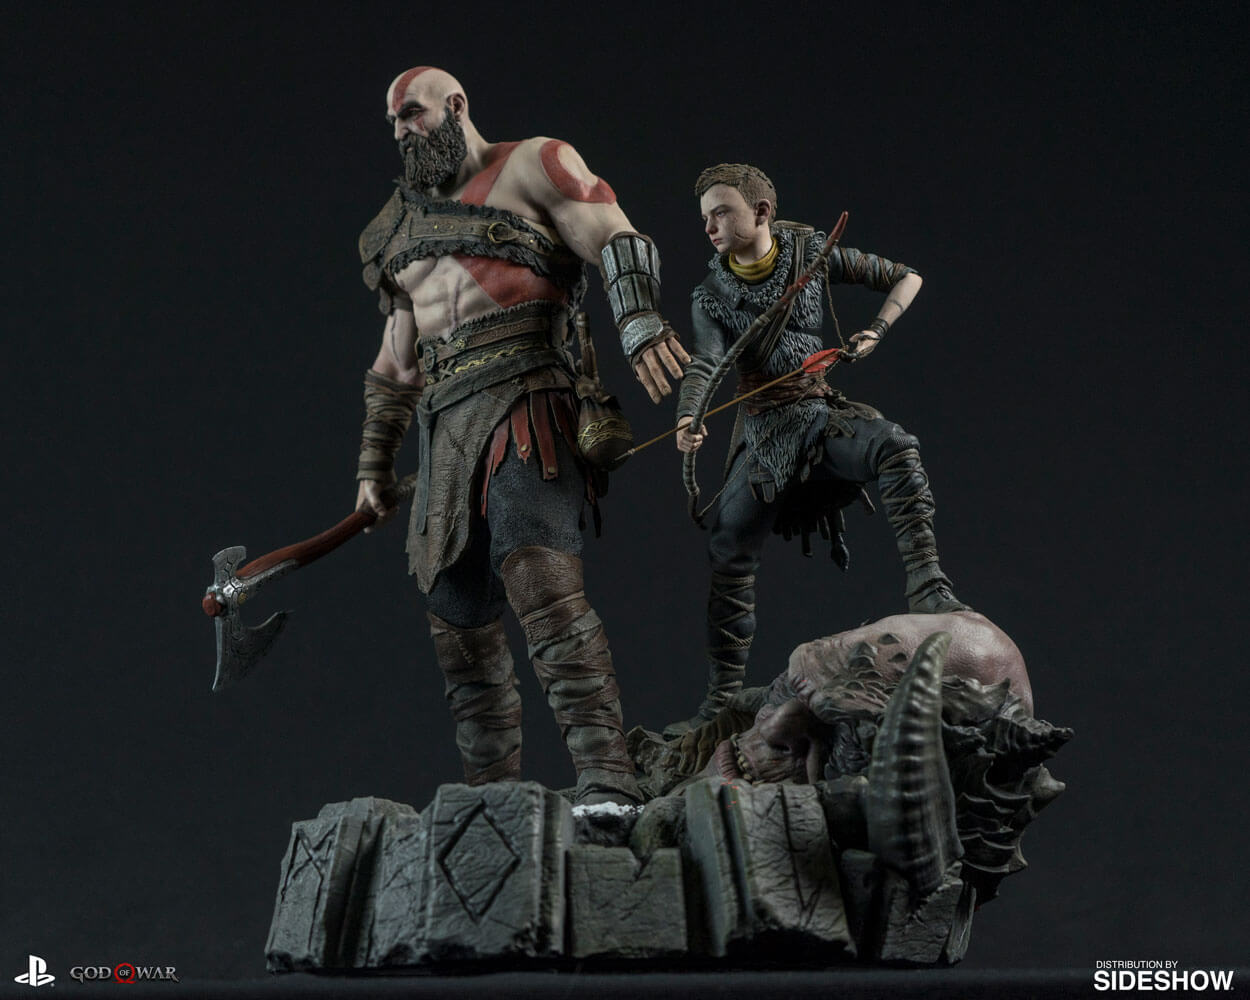 Screenshot de Kratos e Atreus